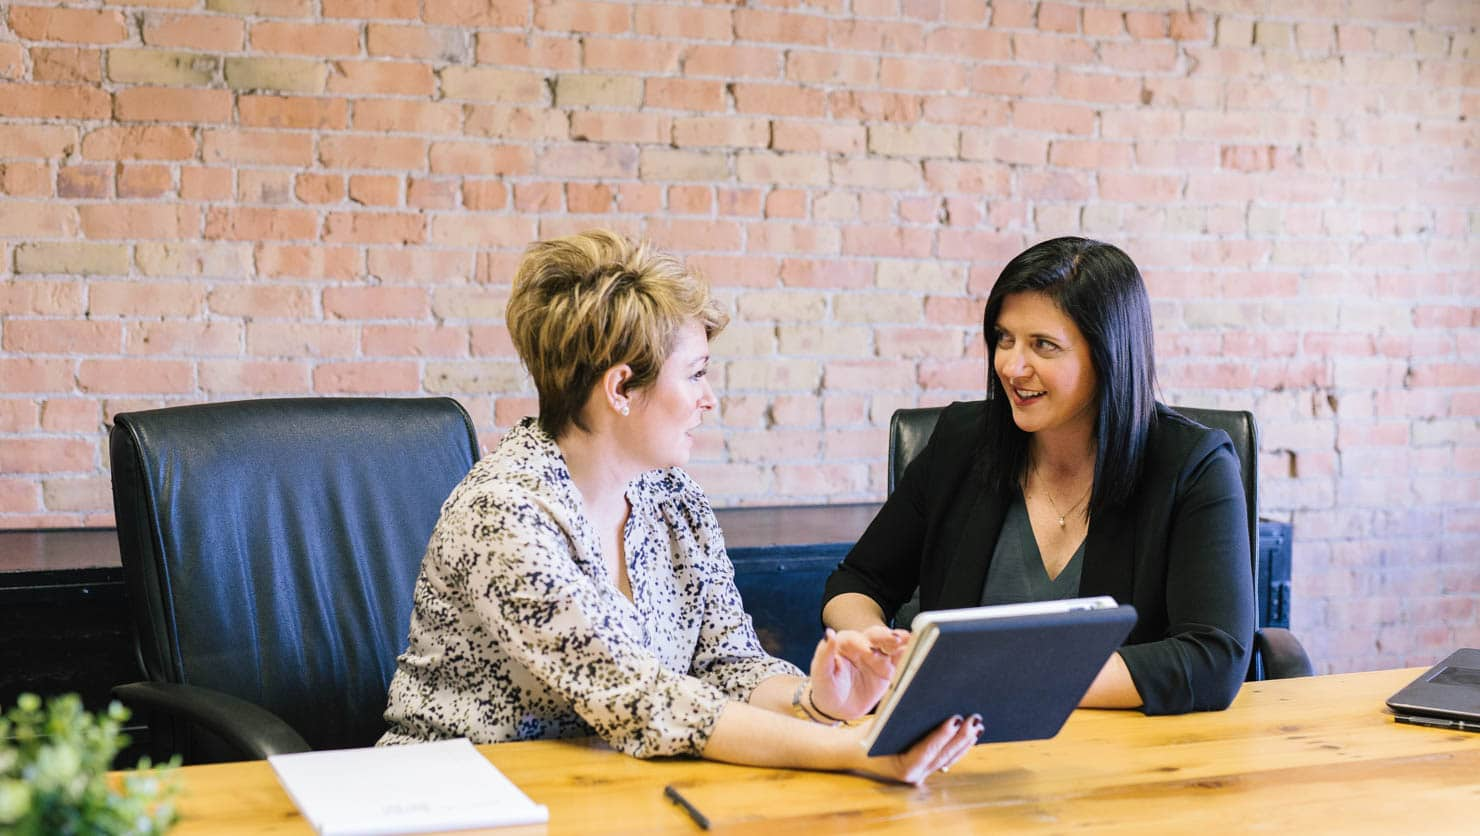 Two women discussing something at a conference table